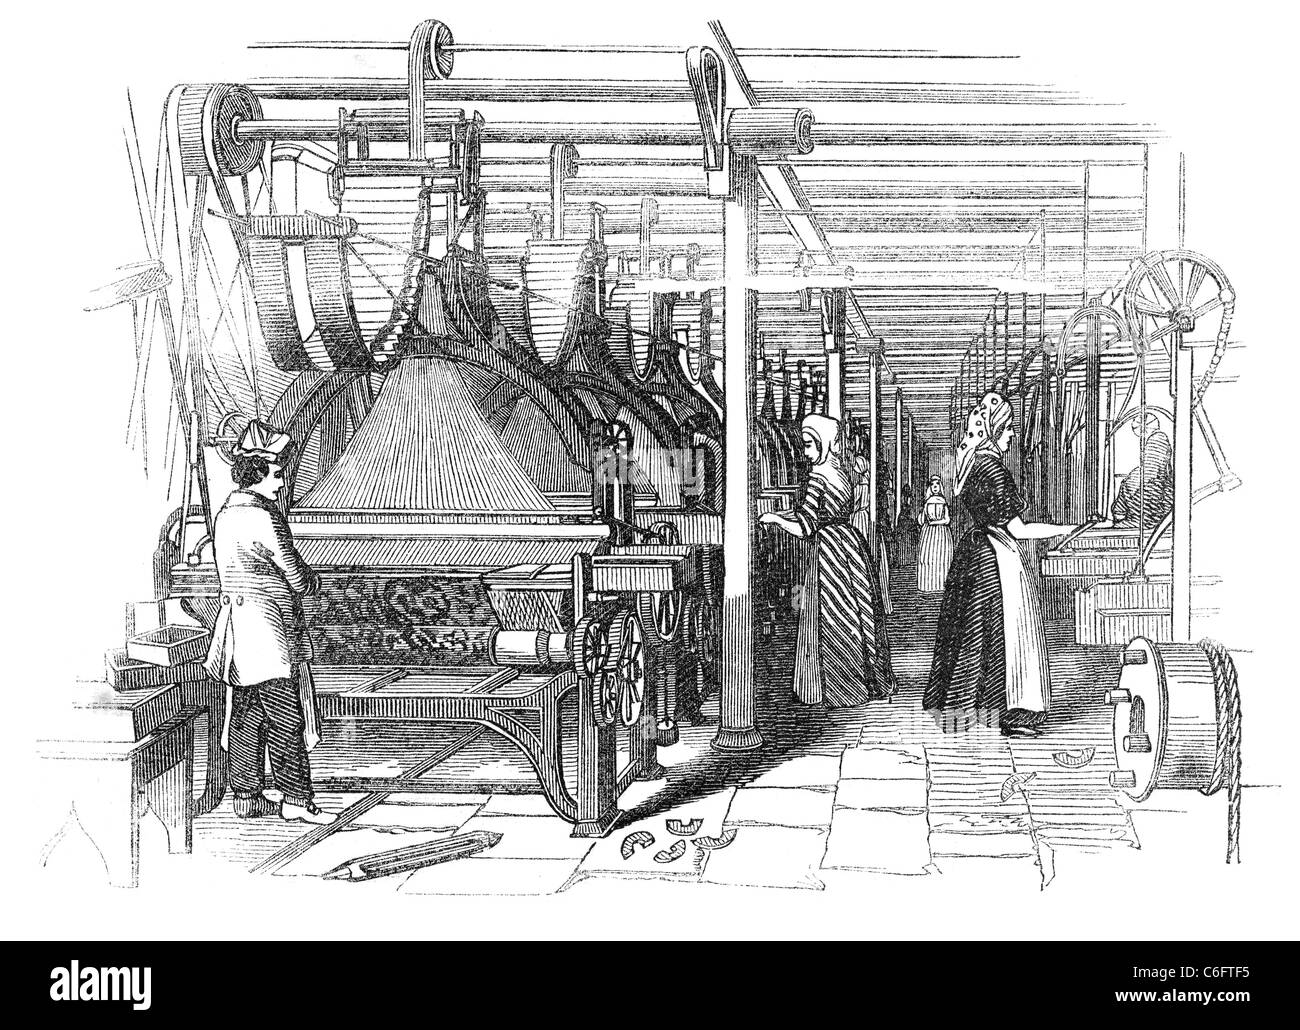 Day at the Yorkshire Worsted-Factories: Jacouard Weaving Shed - Stock Image